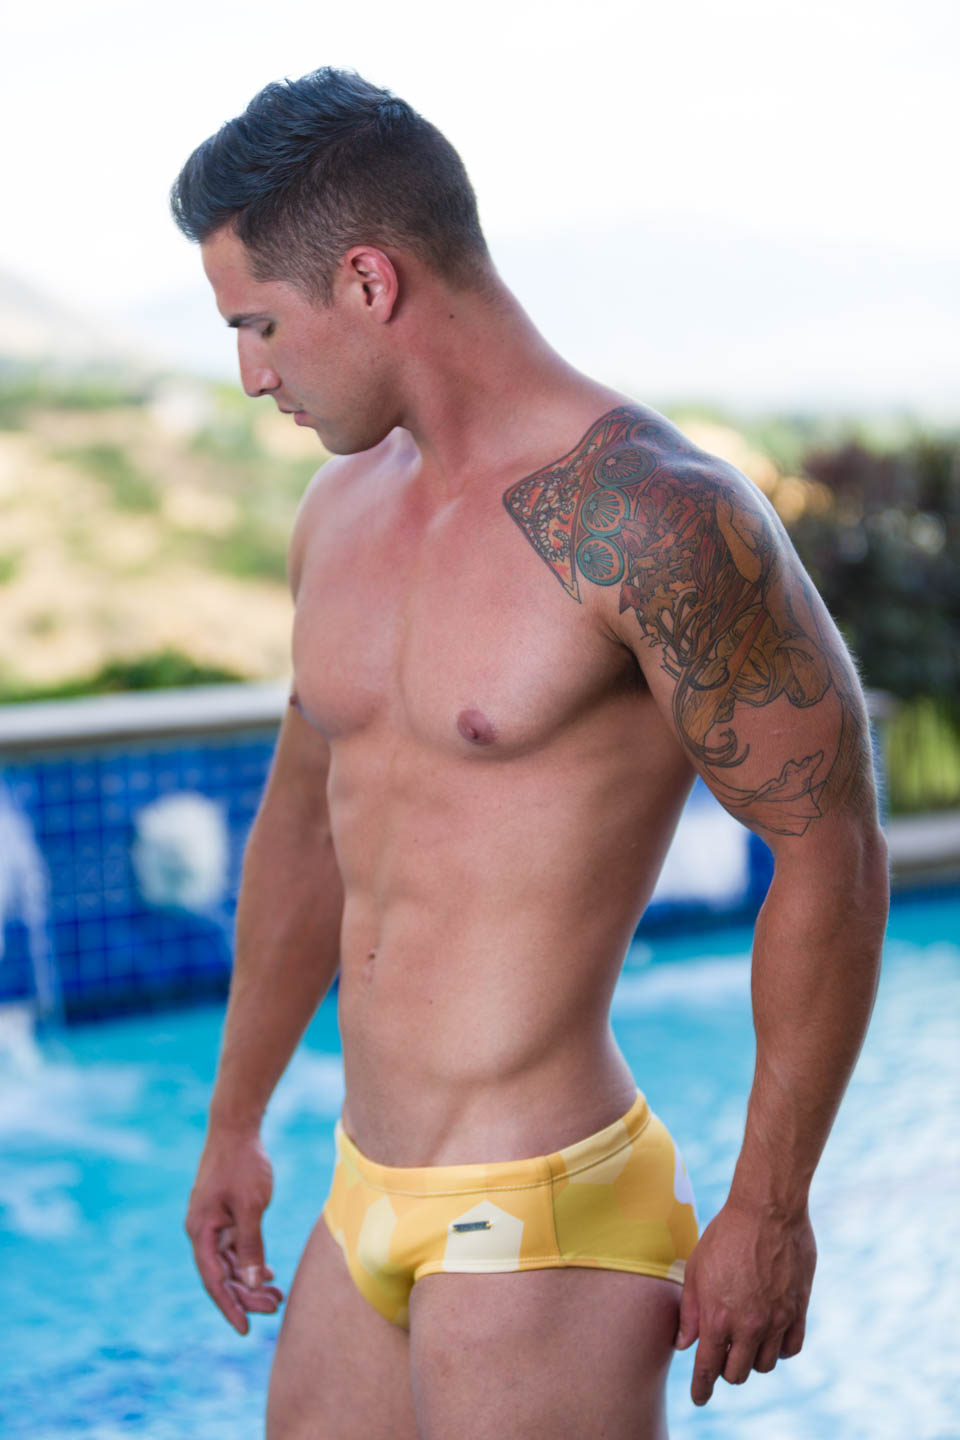 Luke models Aronik Wasatch swimwear